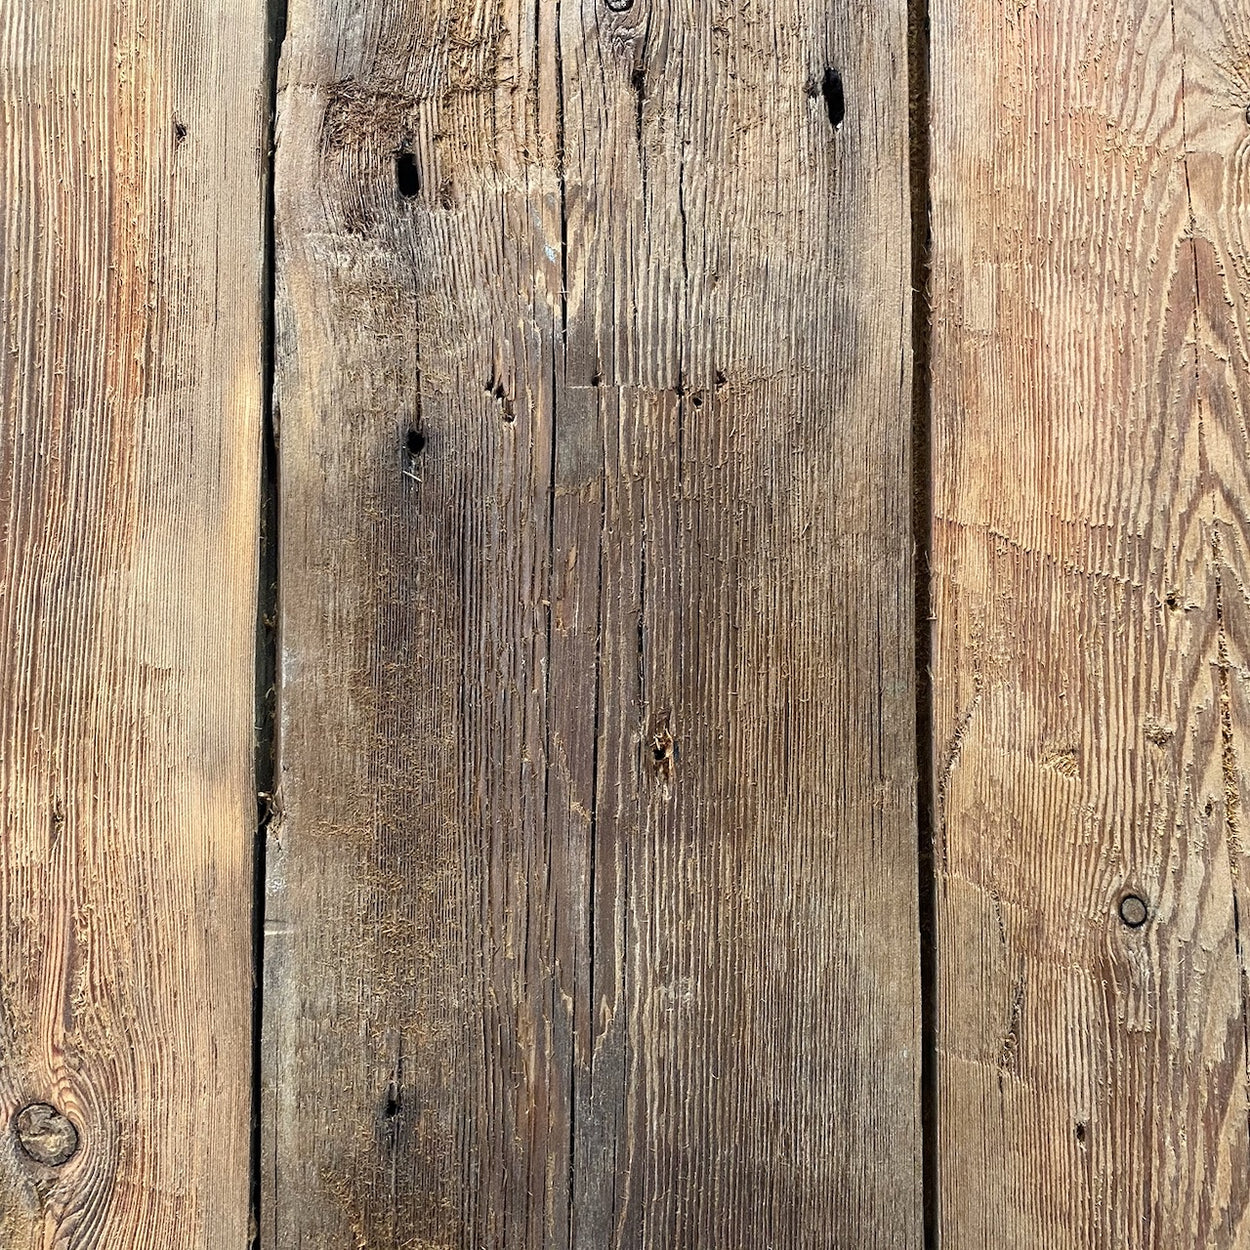 Reclaimed Engine Shed Cladding Boards